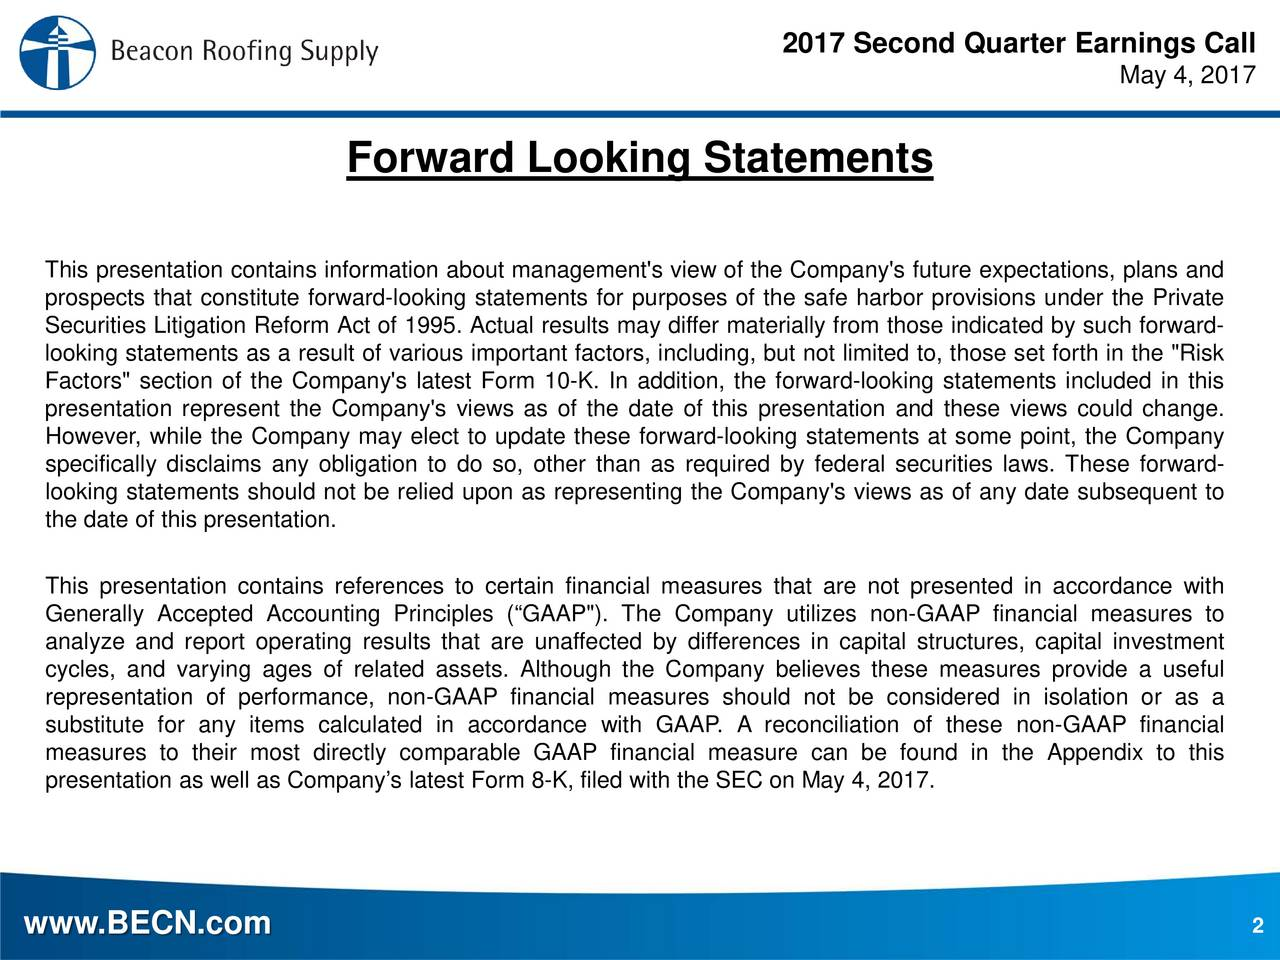 "May 4, 2017 Forward Looking Statements This presentation contains information about management's view of the Company's future expectations, plans and prospects that constitute forward-looking statements for purposes of the safe harbor provisions under the Private Securities Litigation Reform Act of 1995. Actual results may differ materially from those indicated by such forward- looking statements as a result of various important factors, including, but not limited to, those set forth in the ""Risk Factors"" section of the Company's latest Form 10-K. In addition, the forward-looking statements included in this presentation represent the Company's views as of the date of this presentation and these views could change. However, while the Company may elect to update these forward-looking statements at some point, the Company specifically disclaims any obligation to do so, other than as required by federal securities laws. These forward- looking statements should not be relied upon as representing the Company's views as of any date subsequent to the date of this presentation. This presentation contains references to certain financial measures that are not presented in accordance with Generally Accepted Accounting Principles (GAAP""). The Company utilizes non-GAAP financial measures to analyze and report operating results that are unaffected by differences in capital structures, capital investment cycles, and varying ages of related assets. Although the Company believes these measures provide a useful representation of performance, non-GAAP financial measures should not be considered in isolation or as a substitute for any items calculated in accordance with GAAP. A reconciliation of these non-GAAP financial measures to their most directly comparable GAAP financial measure can be found in the Appendix to this presentation as well as Companys latest Form 8-K, filed with the SEC on May 4, 2017. www.BECN.com 2"